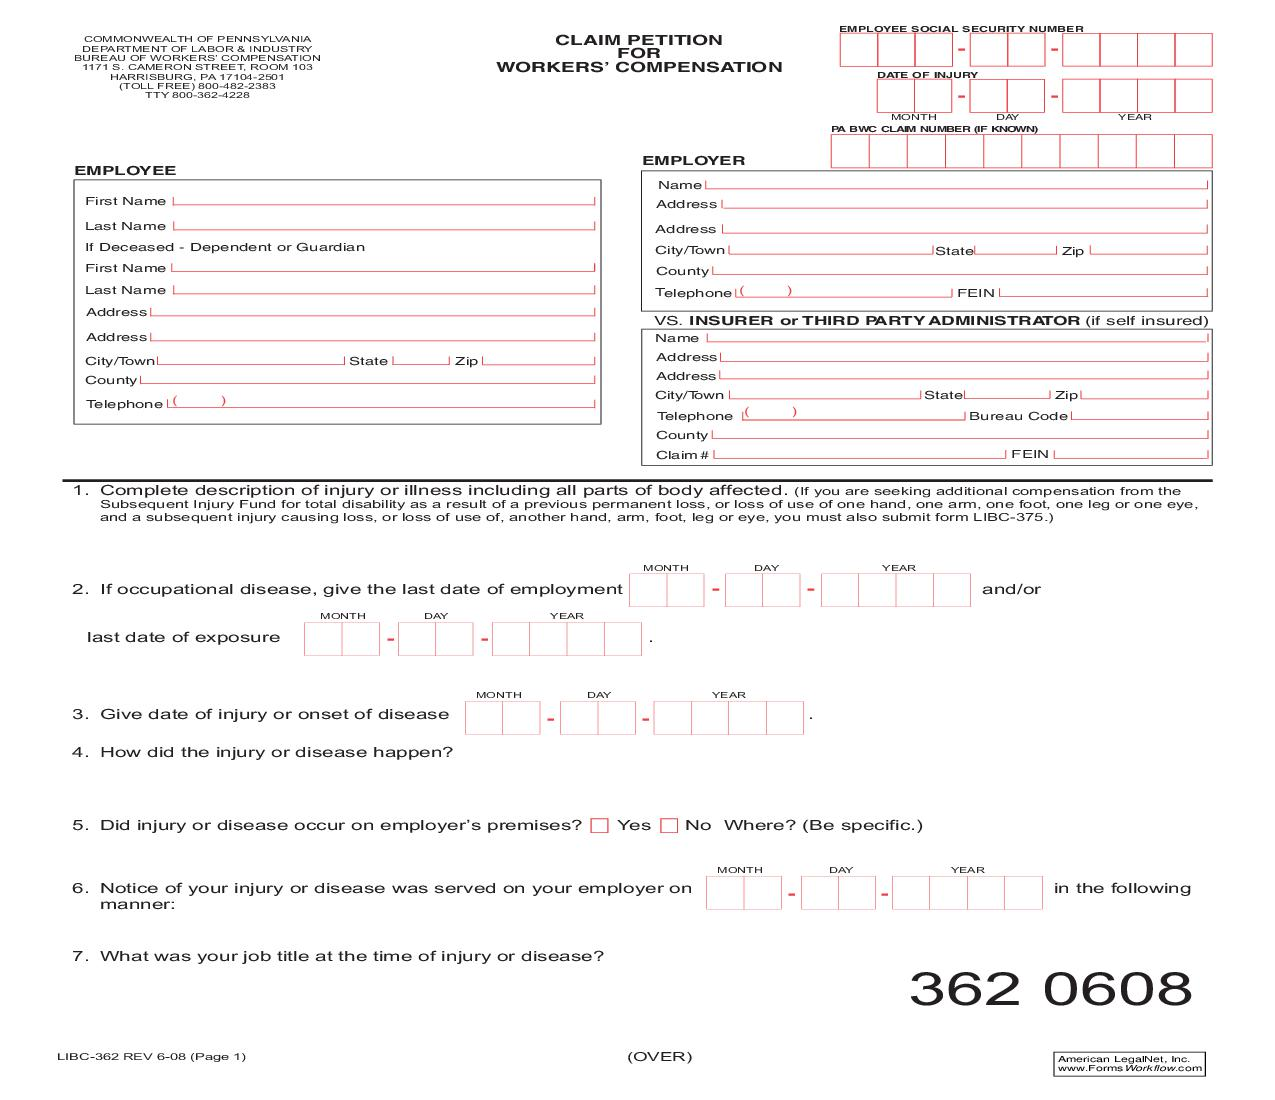 Claim Petition For Workers Compensation {LIBC-362} | Pdf Fpdf Doc Docx | KnoxLaw